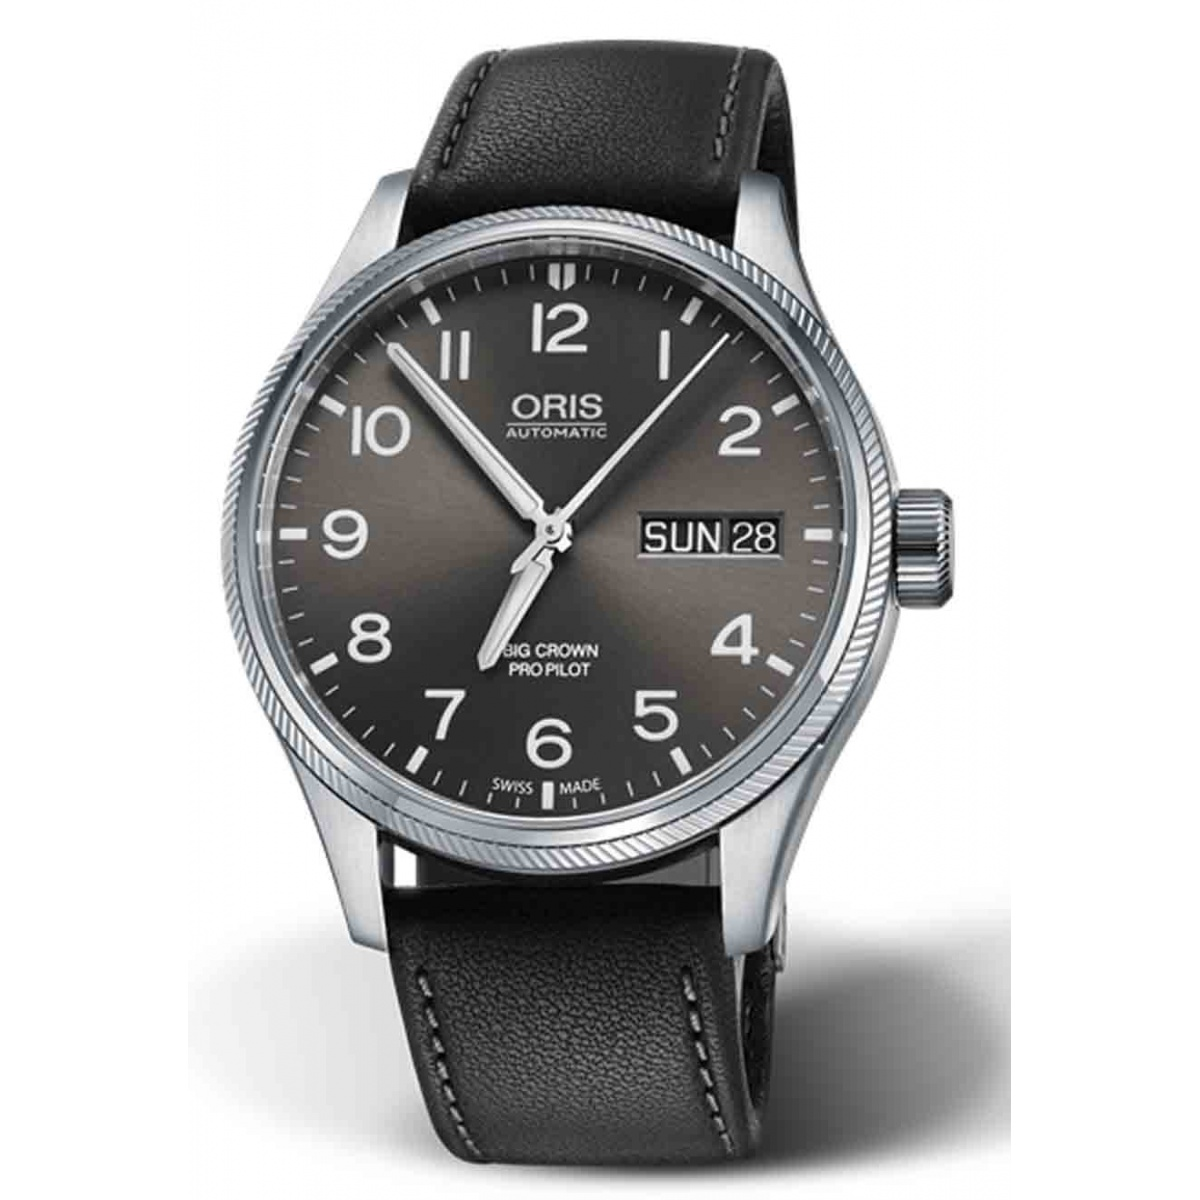 ORIS BIG CROWN PROPILOT BIG DAY DATE 100 M ∅45 mm, Esfera gris, brazalete de piel negra